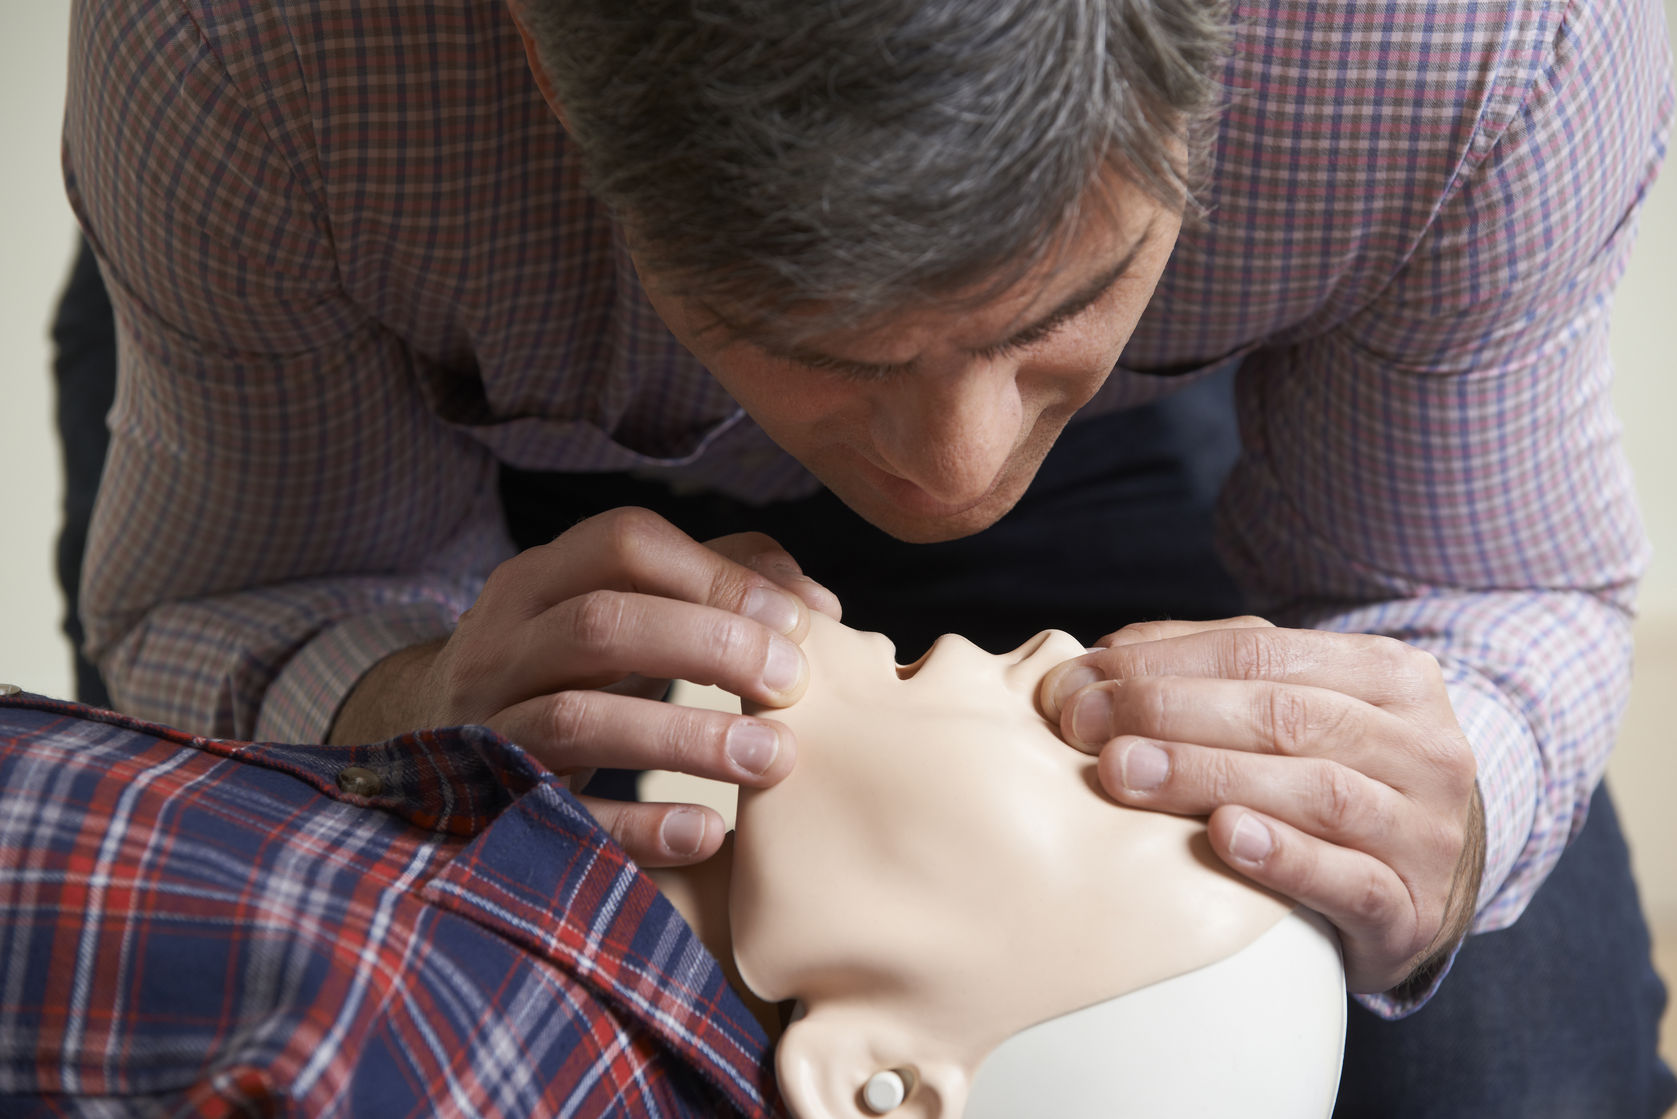 First Aid stock photo.jpg